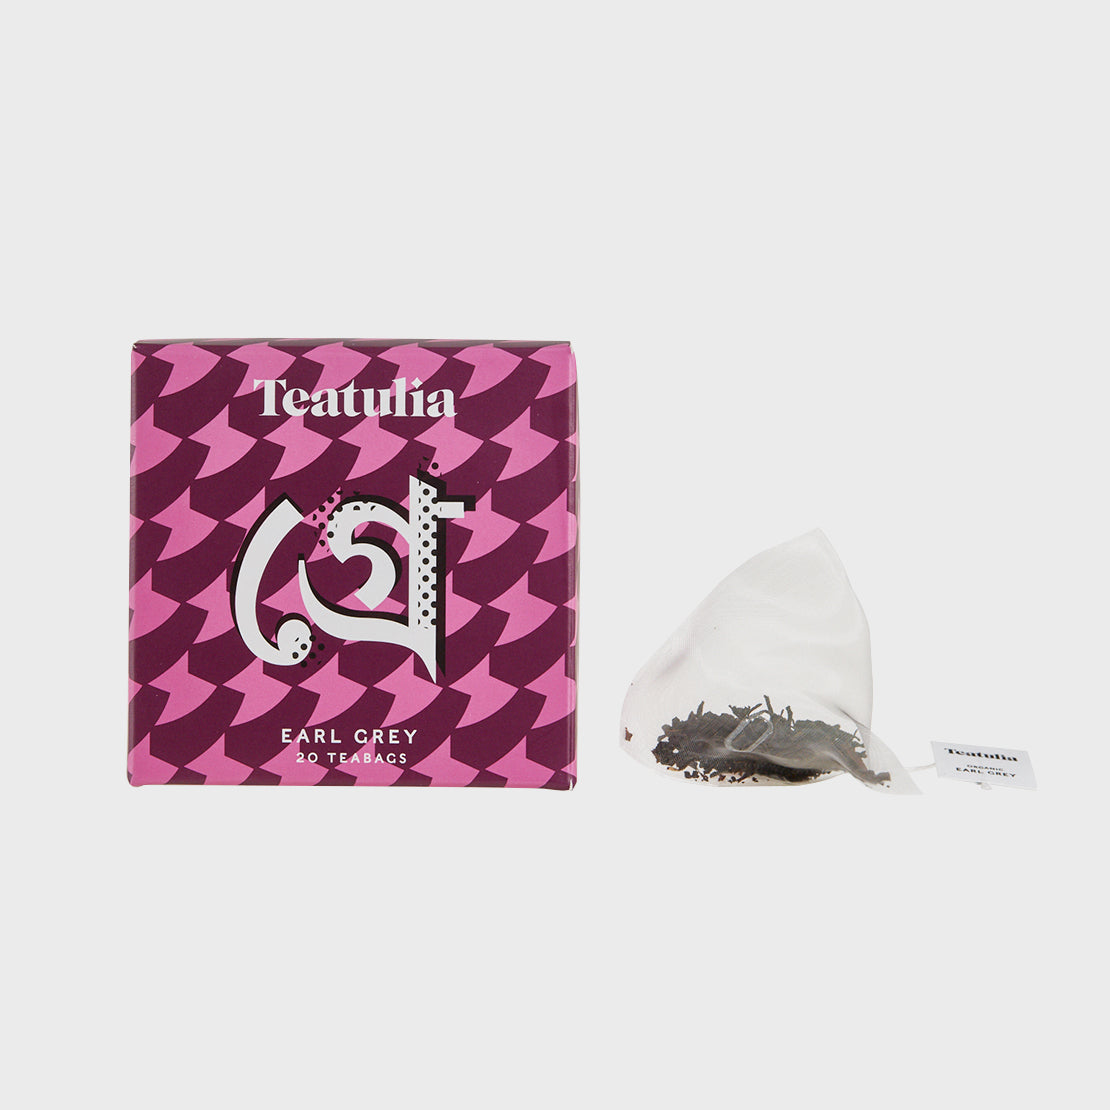 Earl Grey Silk Pyramid Teabags